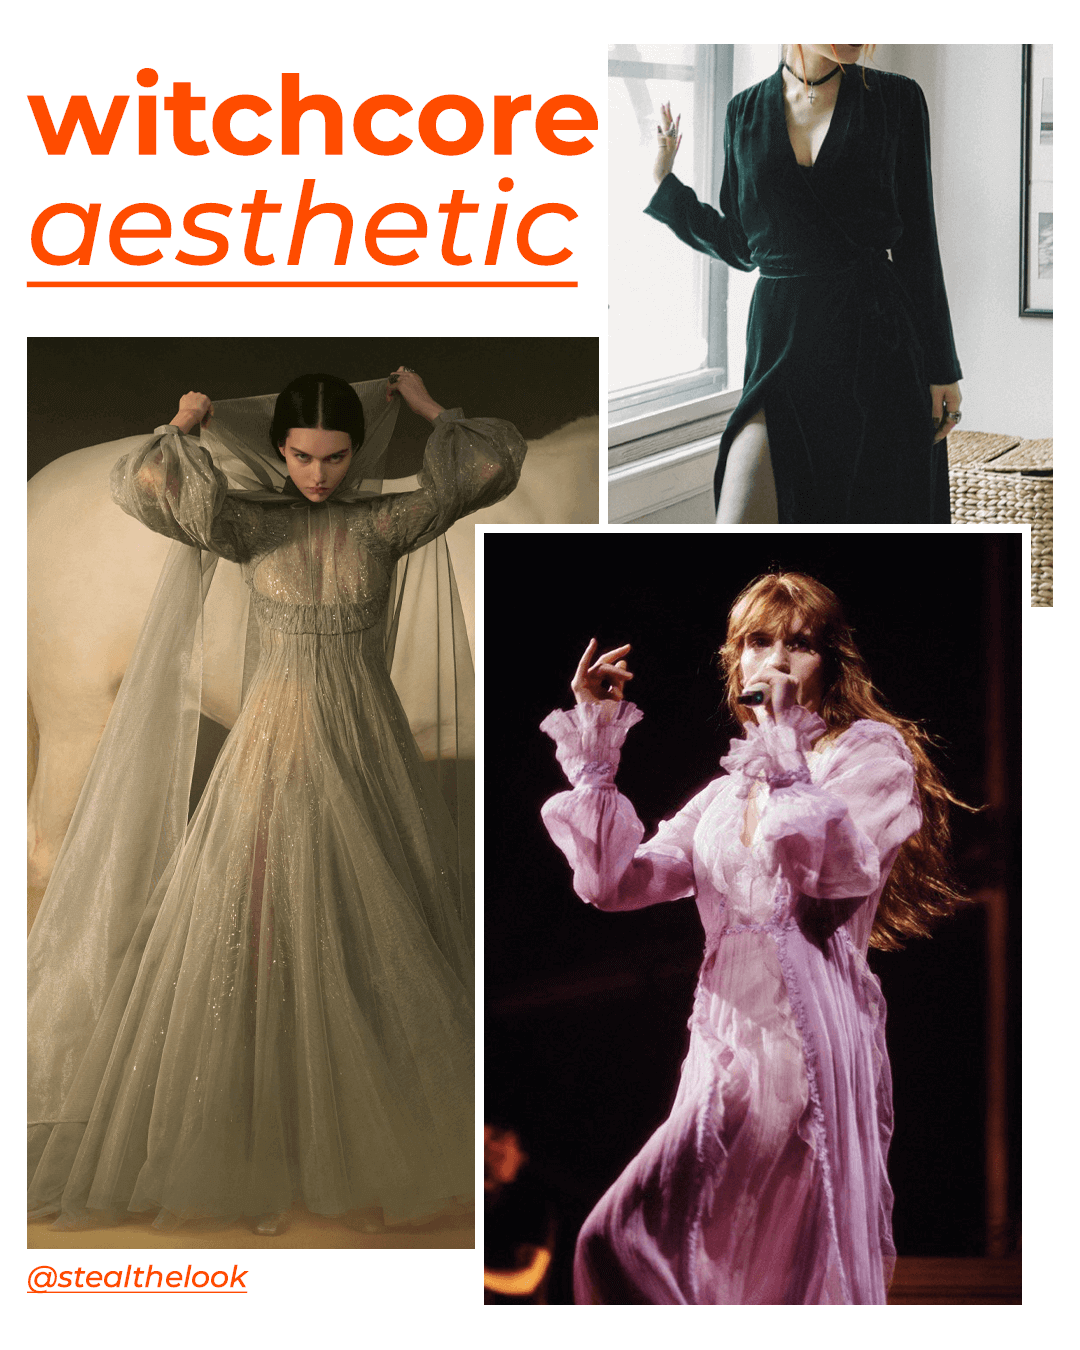 Christian Dior, Florence Welch, Luanna - tendências core aesthetic - kidcore cottagecore witchcore  - outono - street style - https://stealthelook.com.br